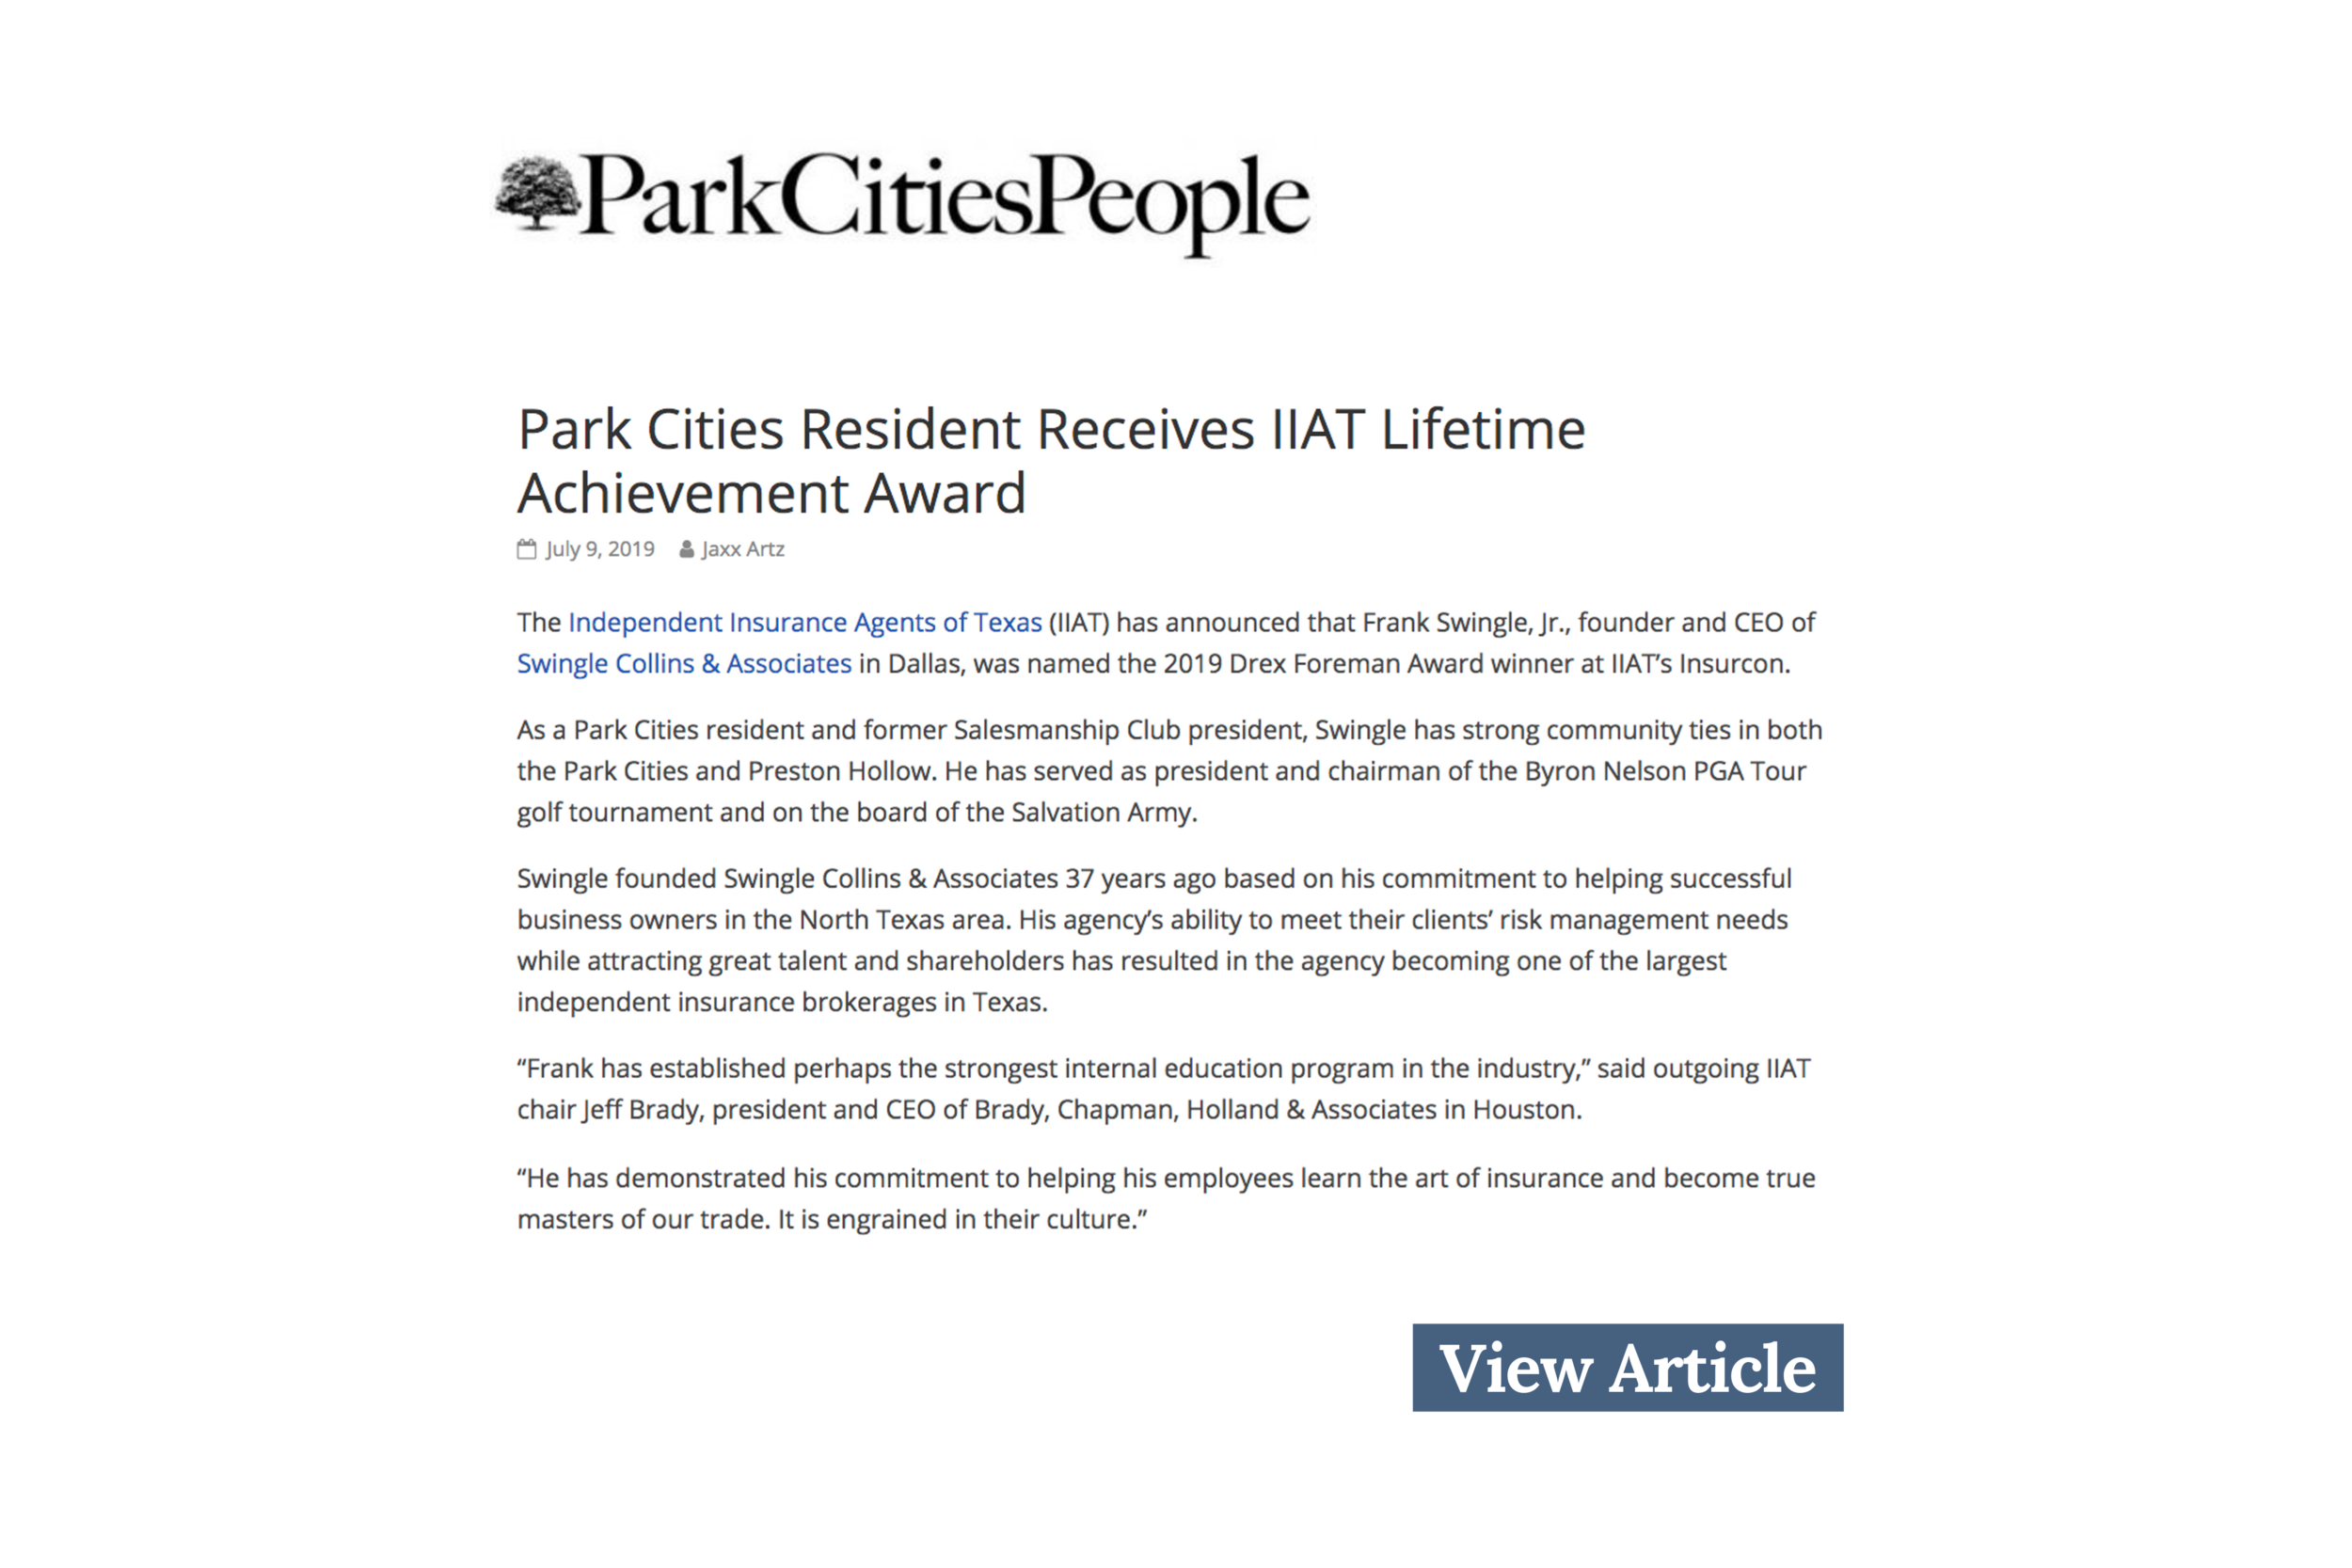 Park Cities Resident Receives IIAT Lifetime Achievement Award